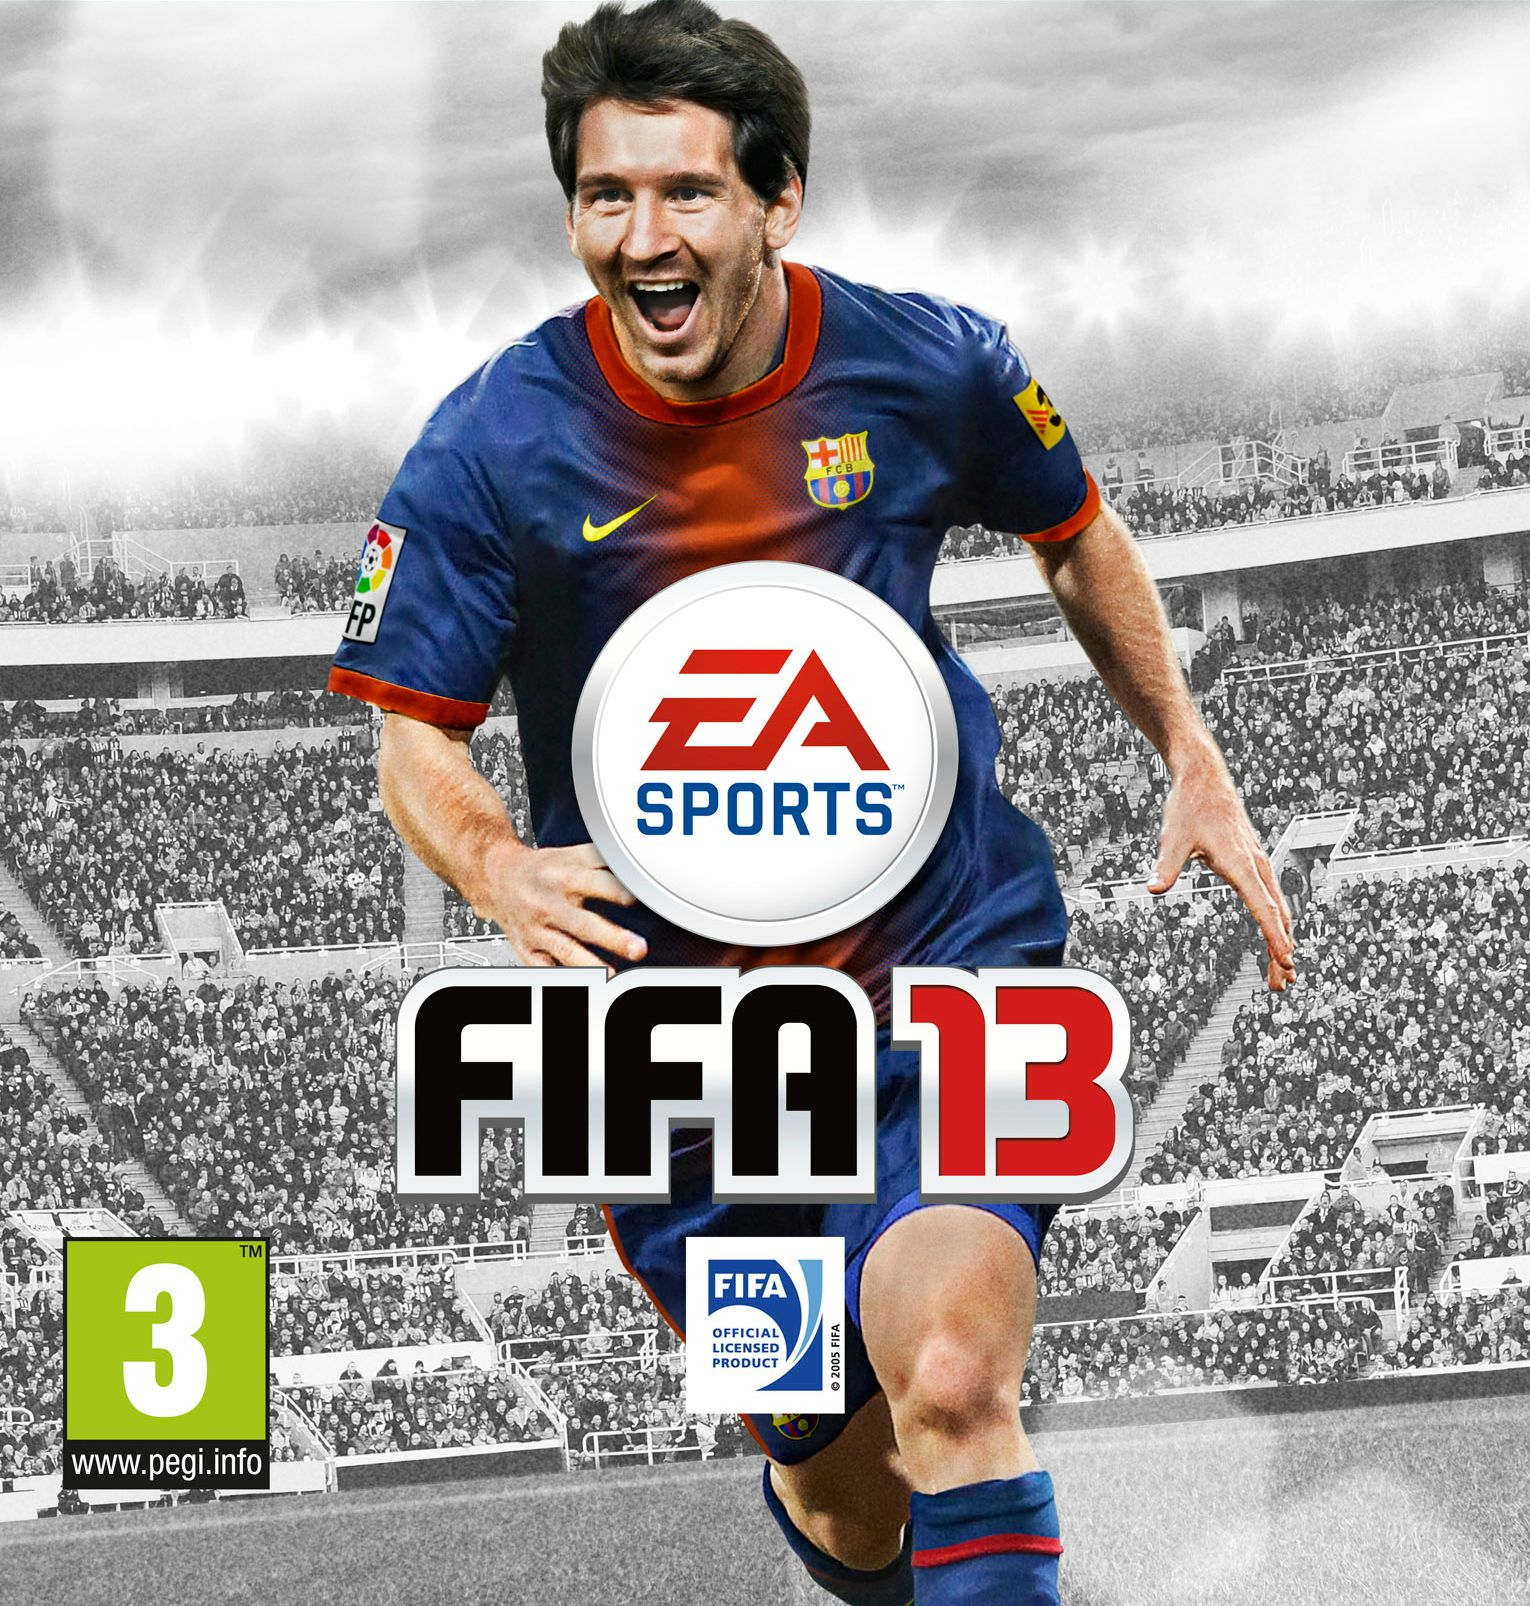 fifa 13 fiche du jeu. Black Bedroom Furniture Sets. Home Design Ideas